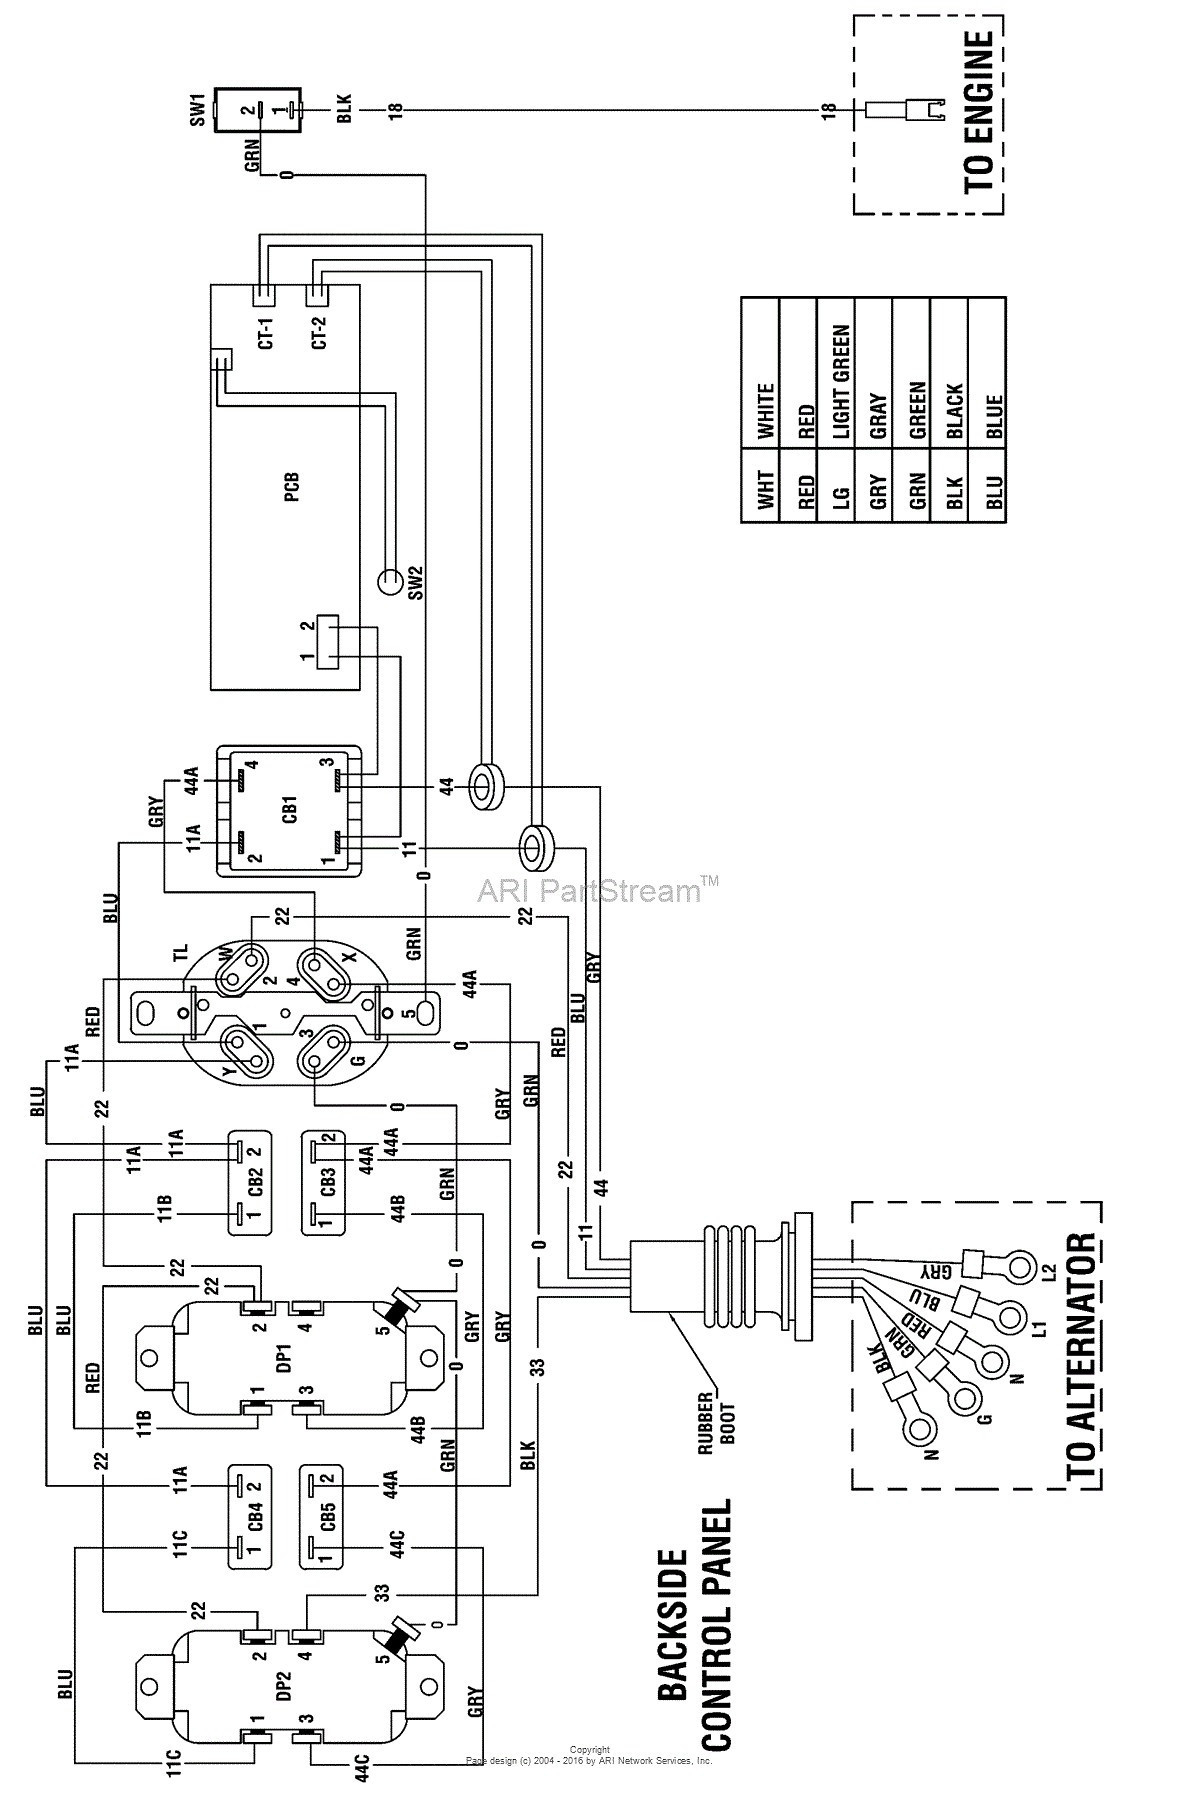 Briggs And Stratton Charging System Wiring Diagram Electrical - Briggs And Stratton Wiring Diagram